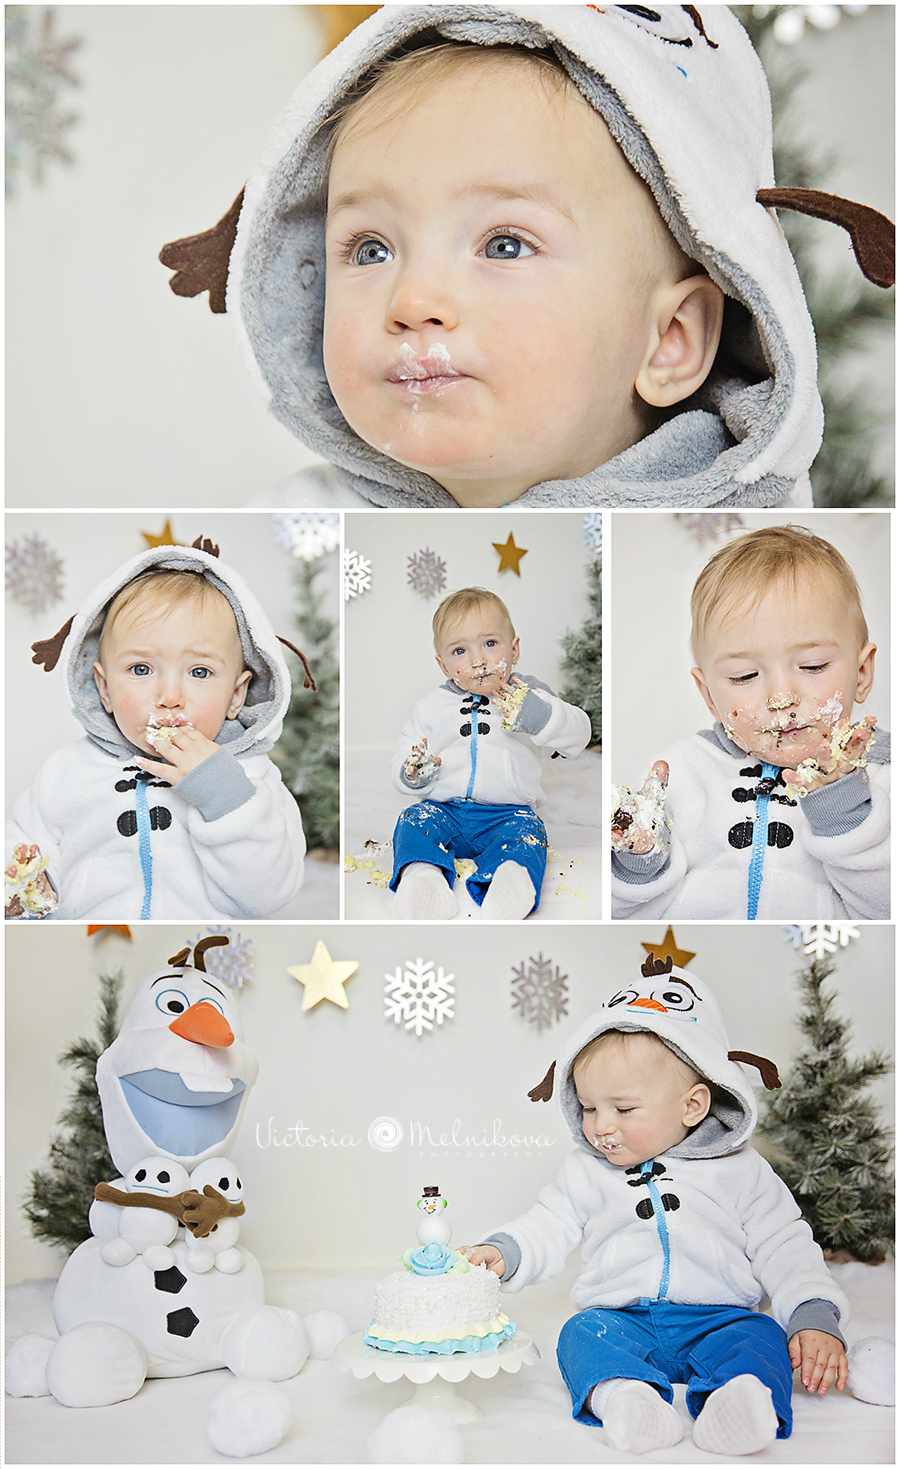 Cake smash winter photography ideas